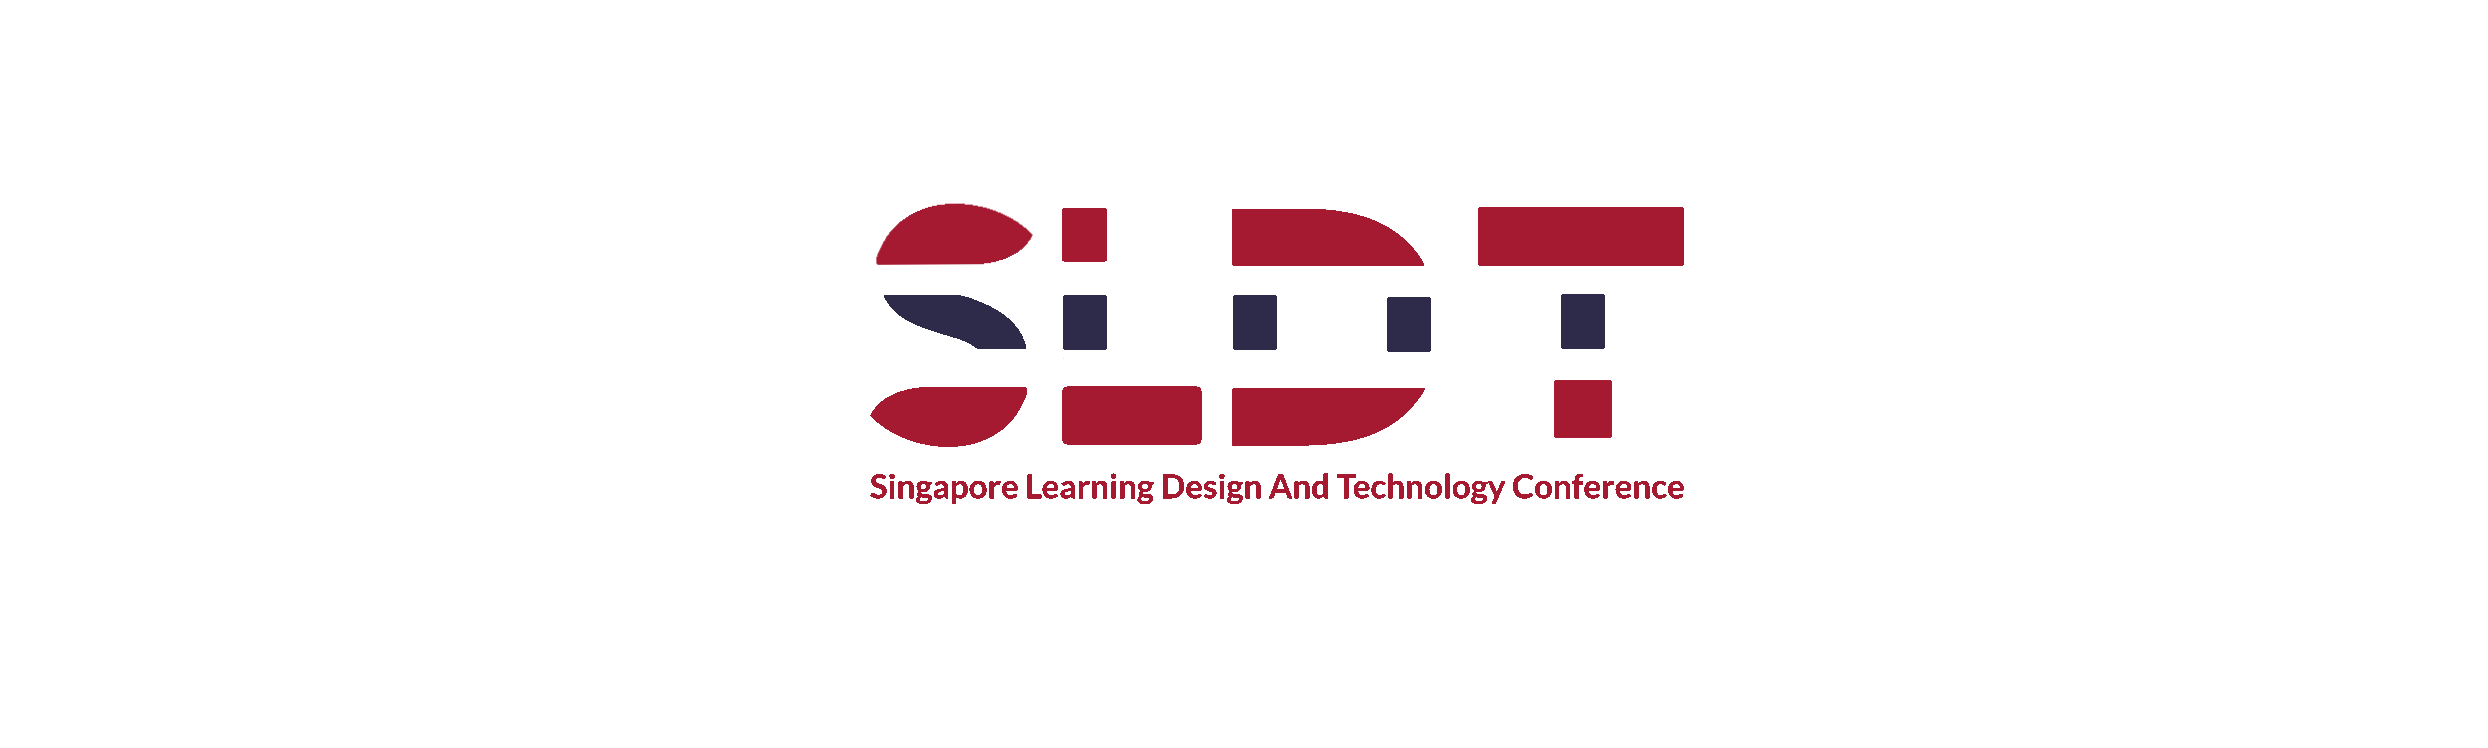 Singapore Learning Design and Technology Conference 2019 (SLDT 2019), Havelock Road, Central, Singapore